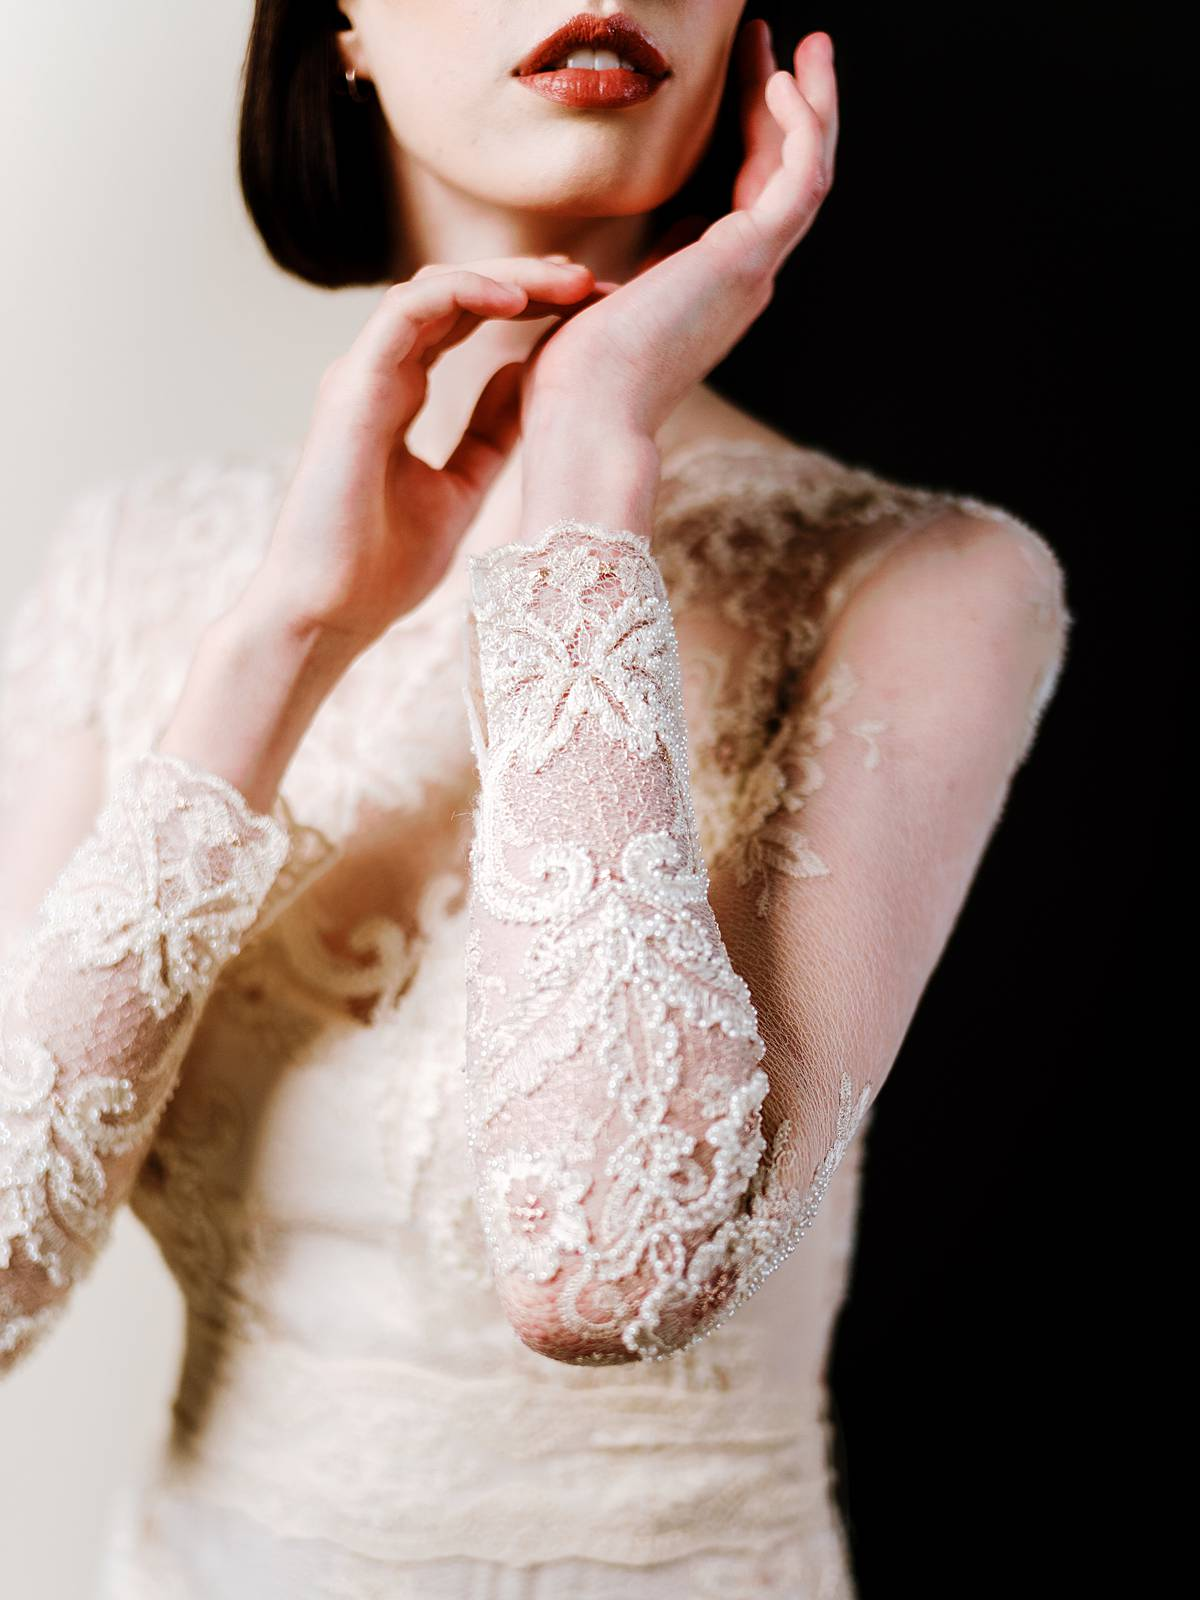 studio bridal portrait in charleston sc by wedding photographer brian d smith with claire pettibone dress